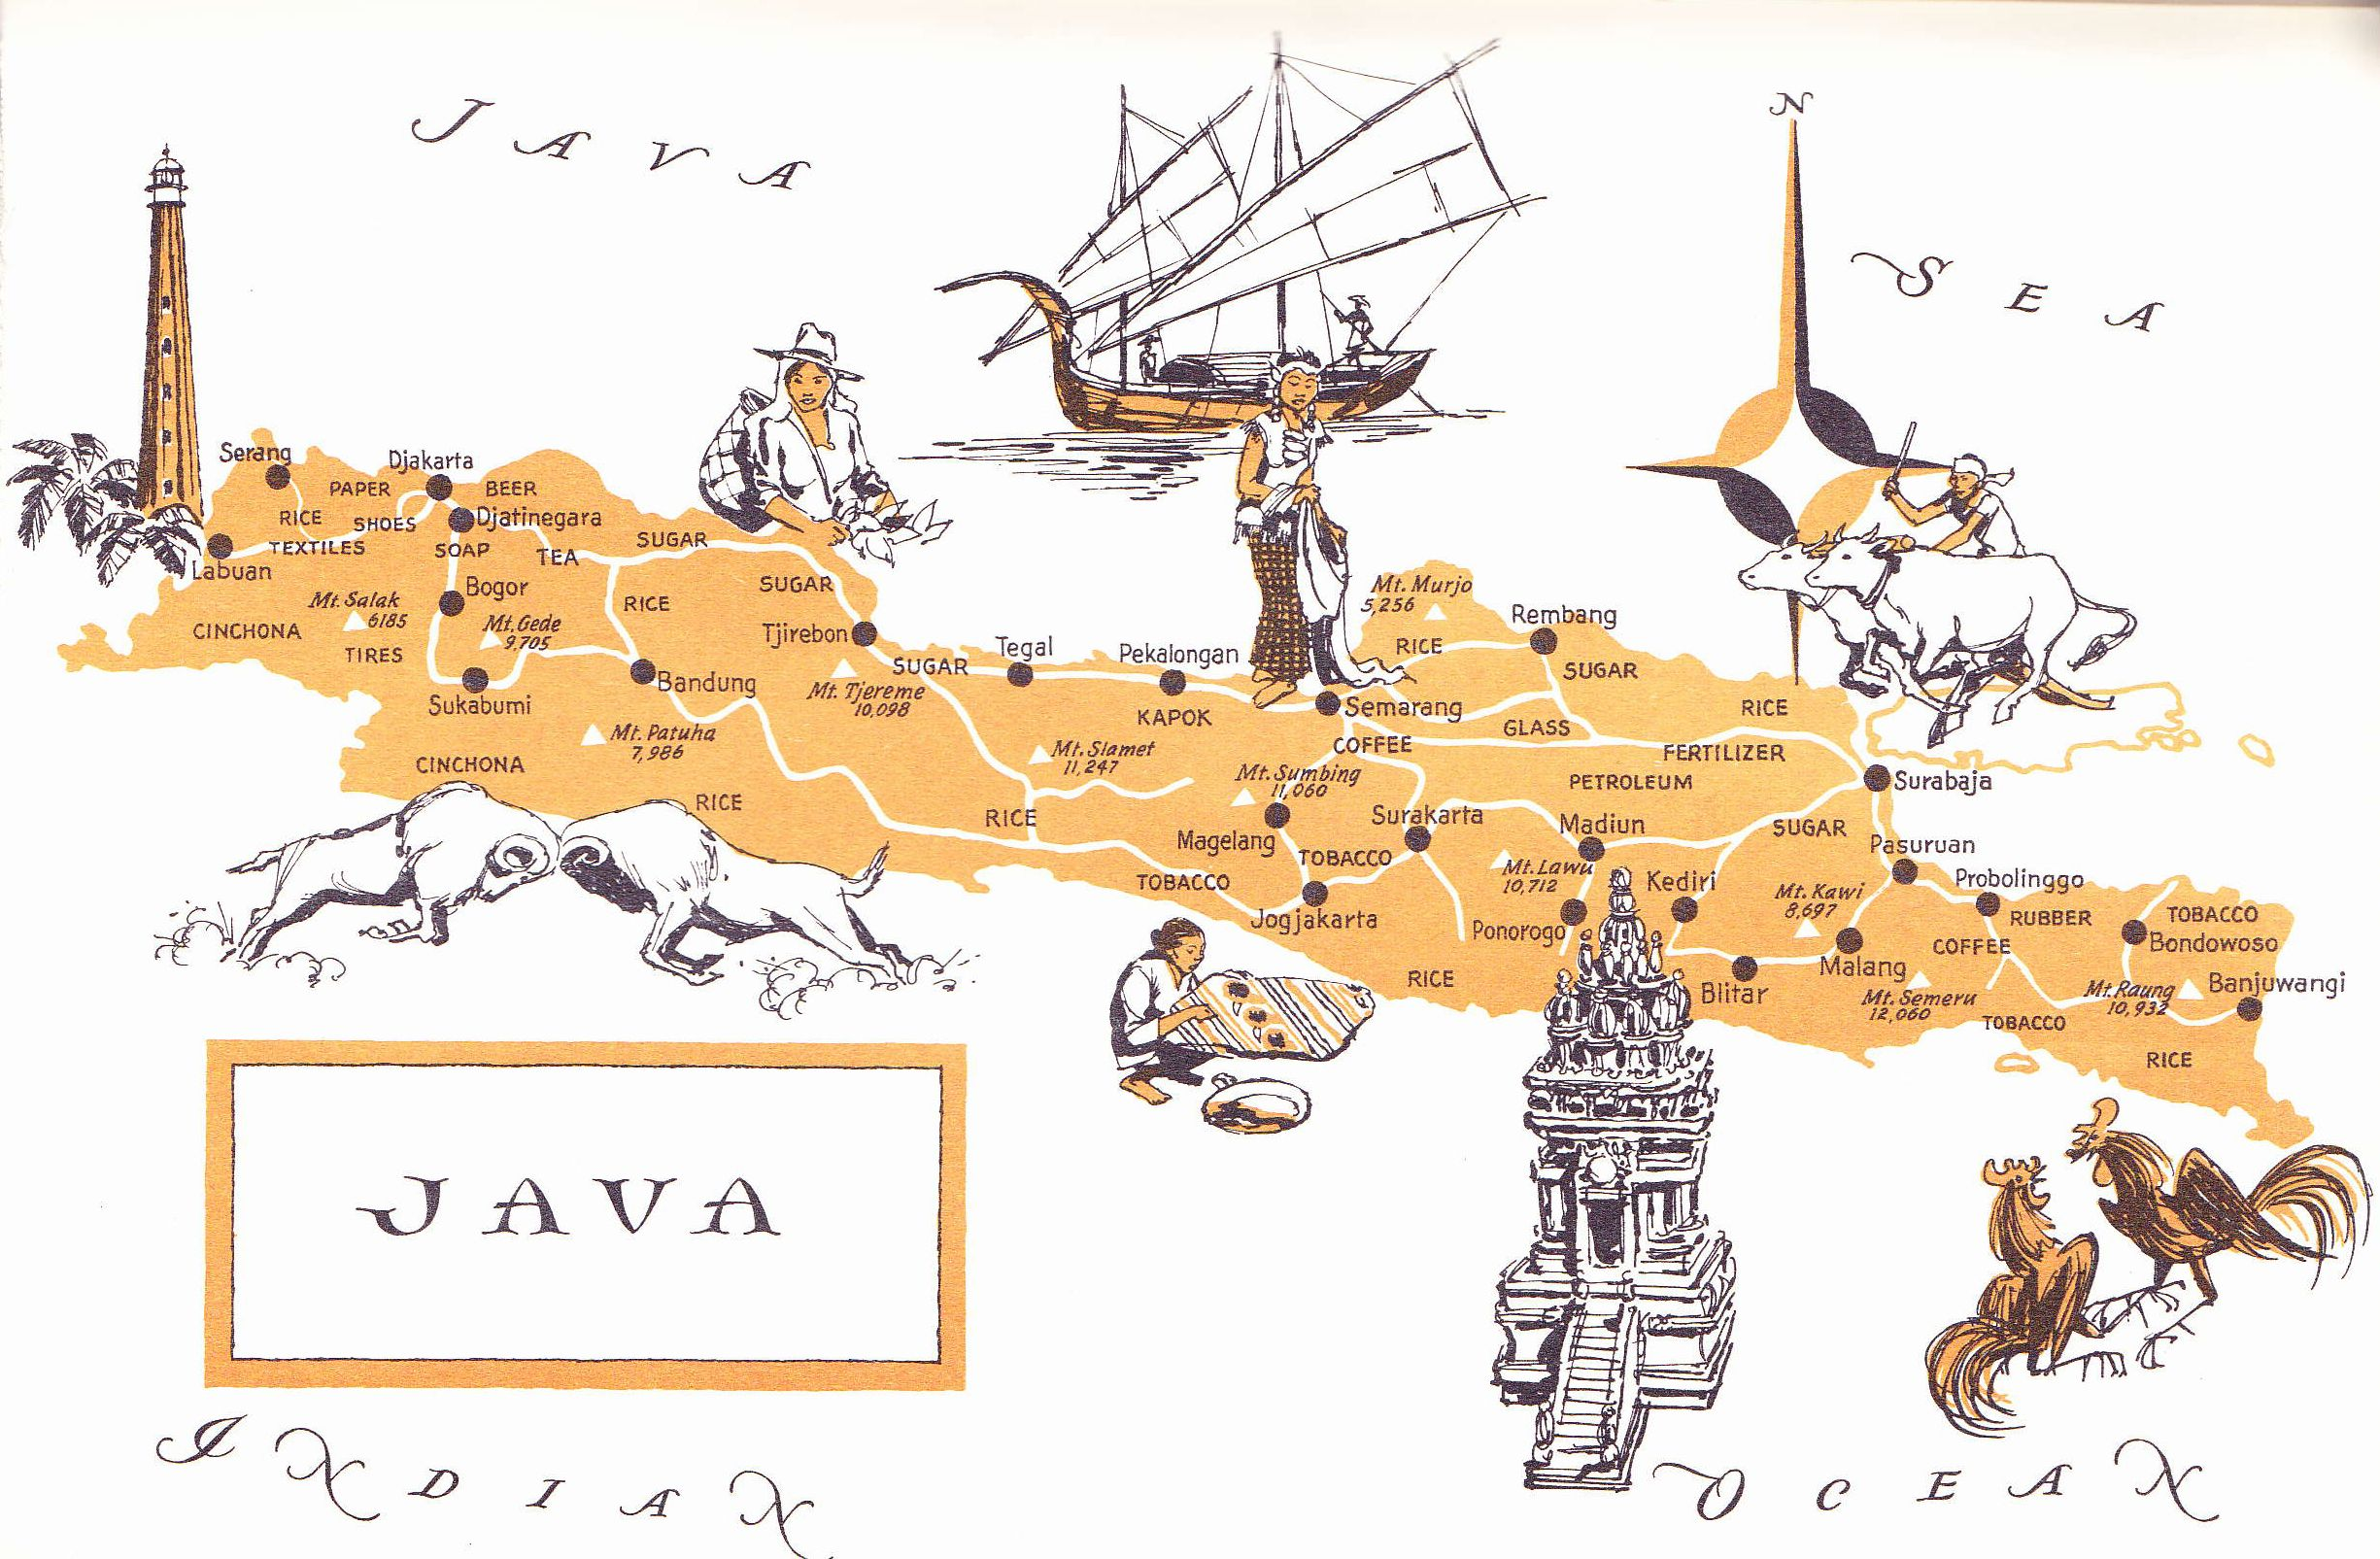 Old map of java indonesia indonesia pinterest java old map of java indonesia sciox Gallery